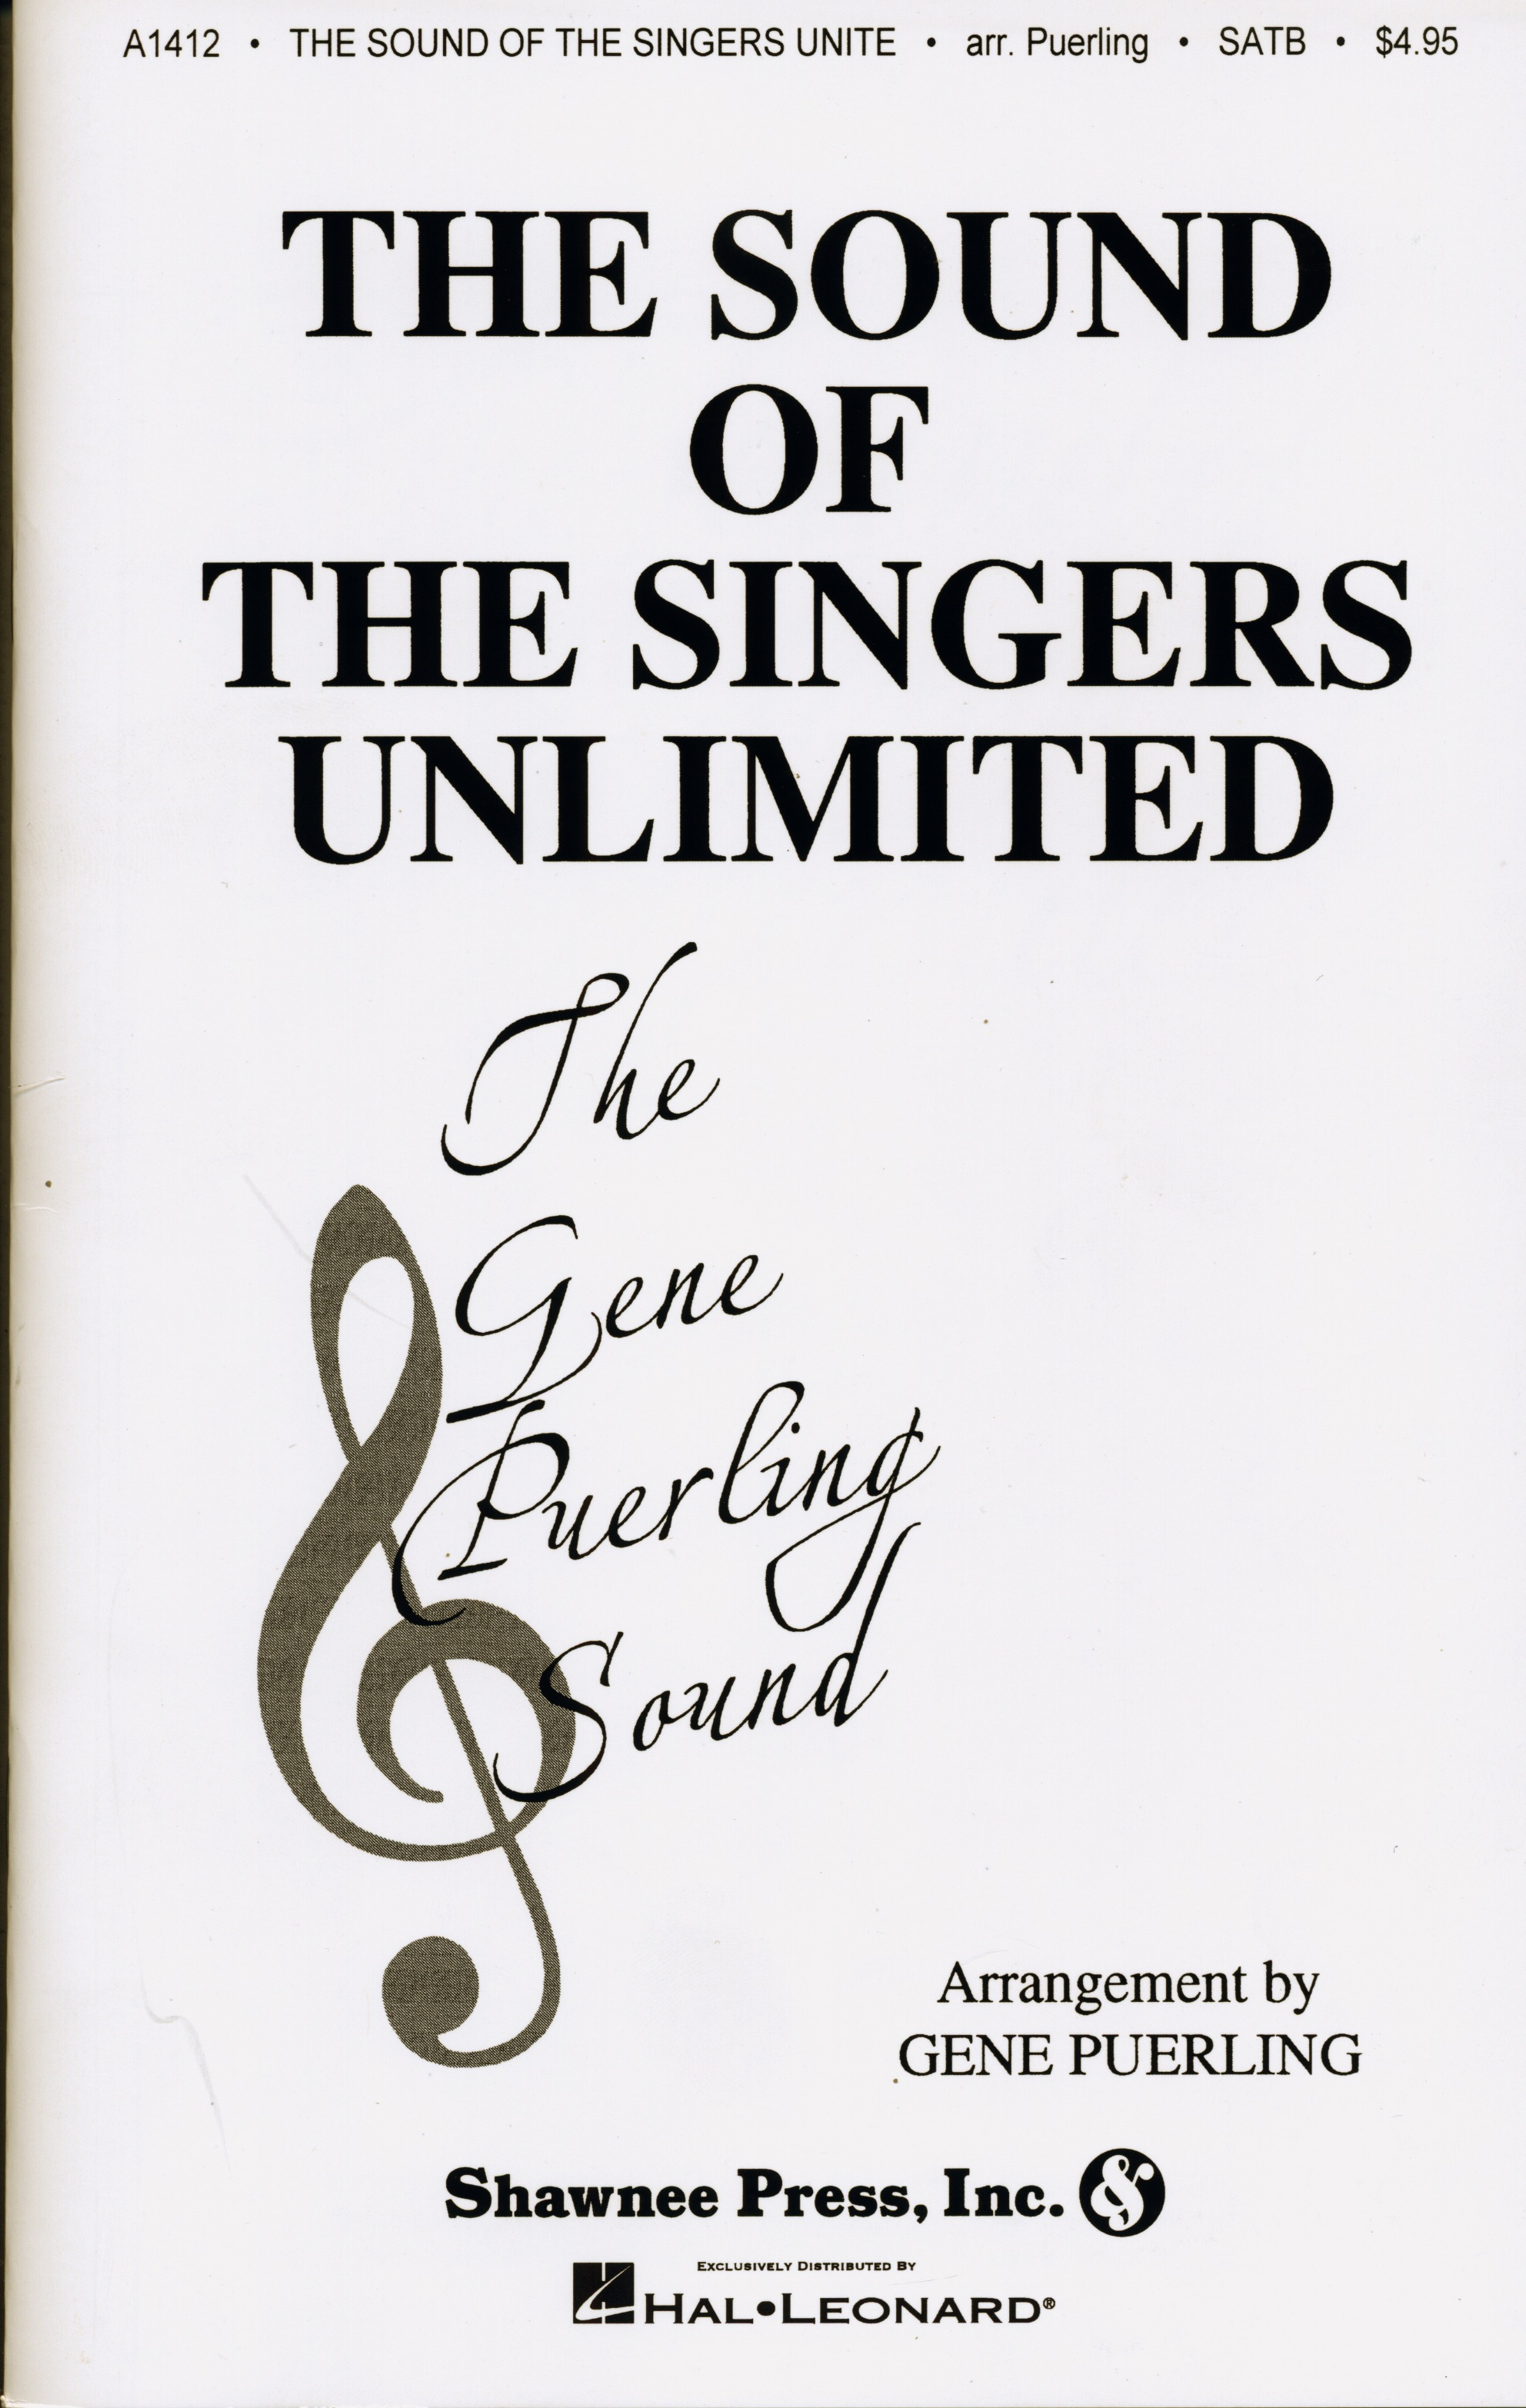 We've Only Just Begun : SSAATBB : Gene Puerling : Roger Nichols : Sheet Music : 35021340 : 747510014645